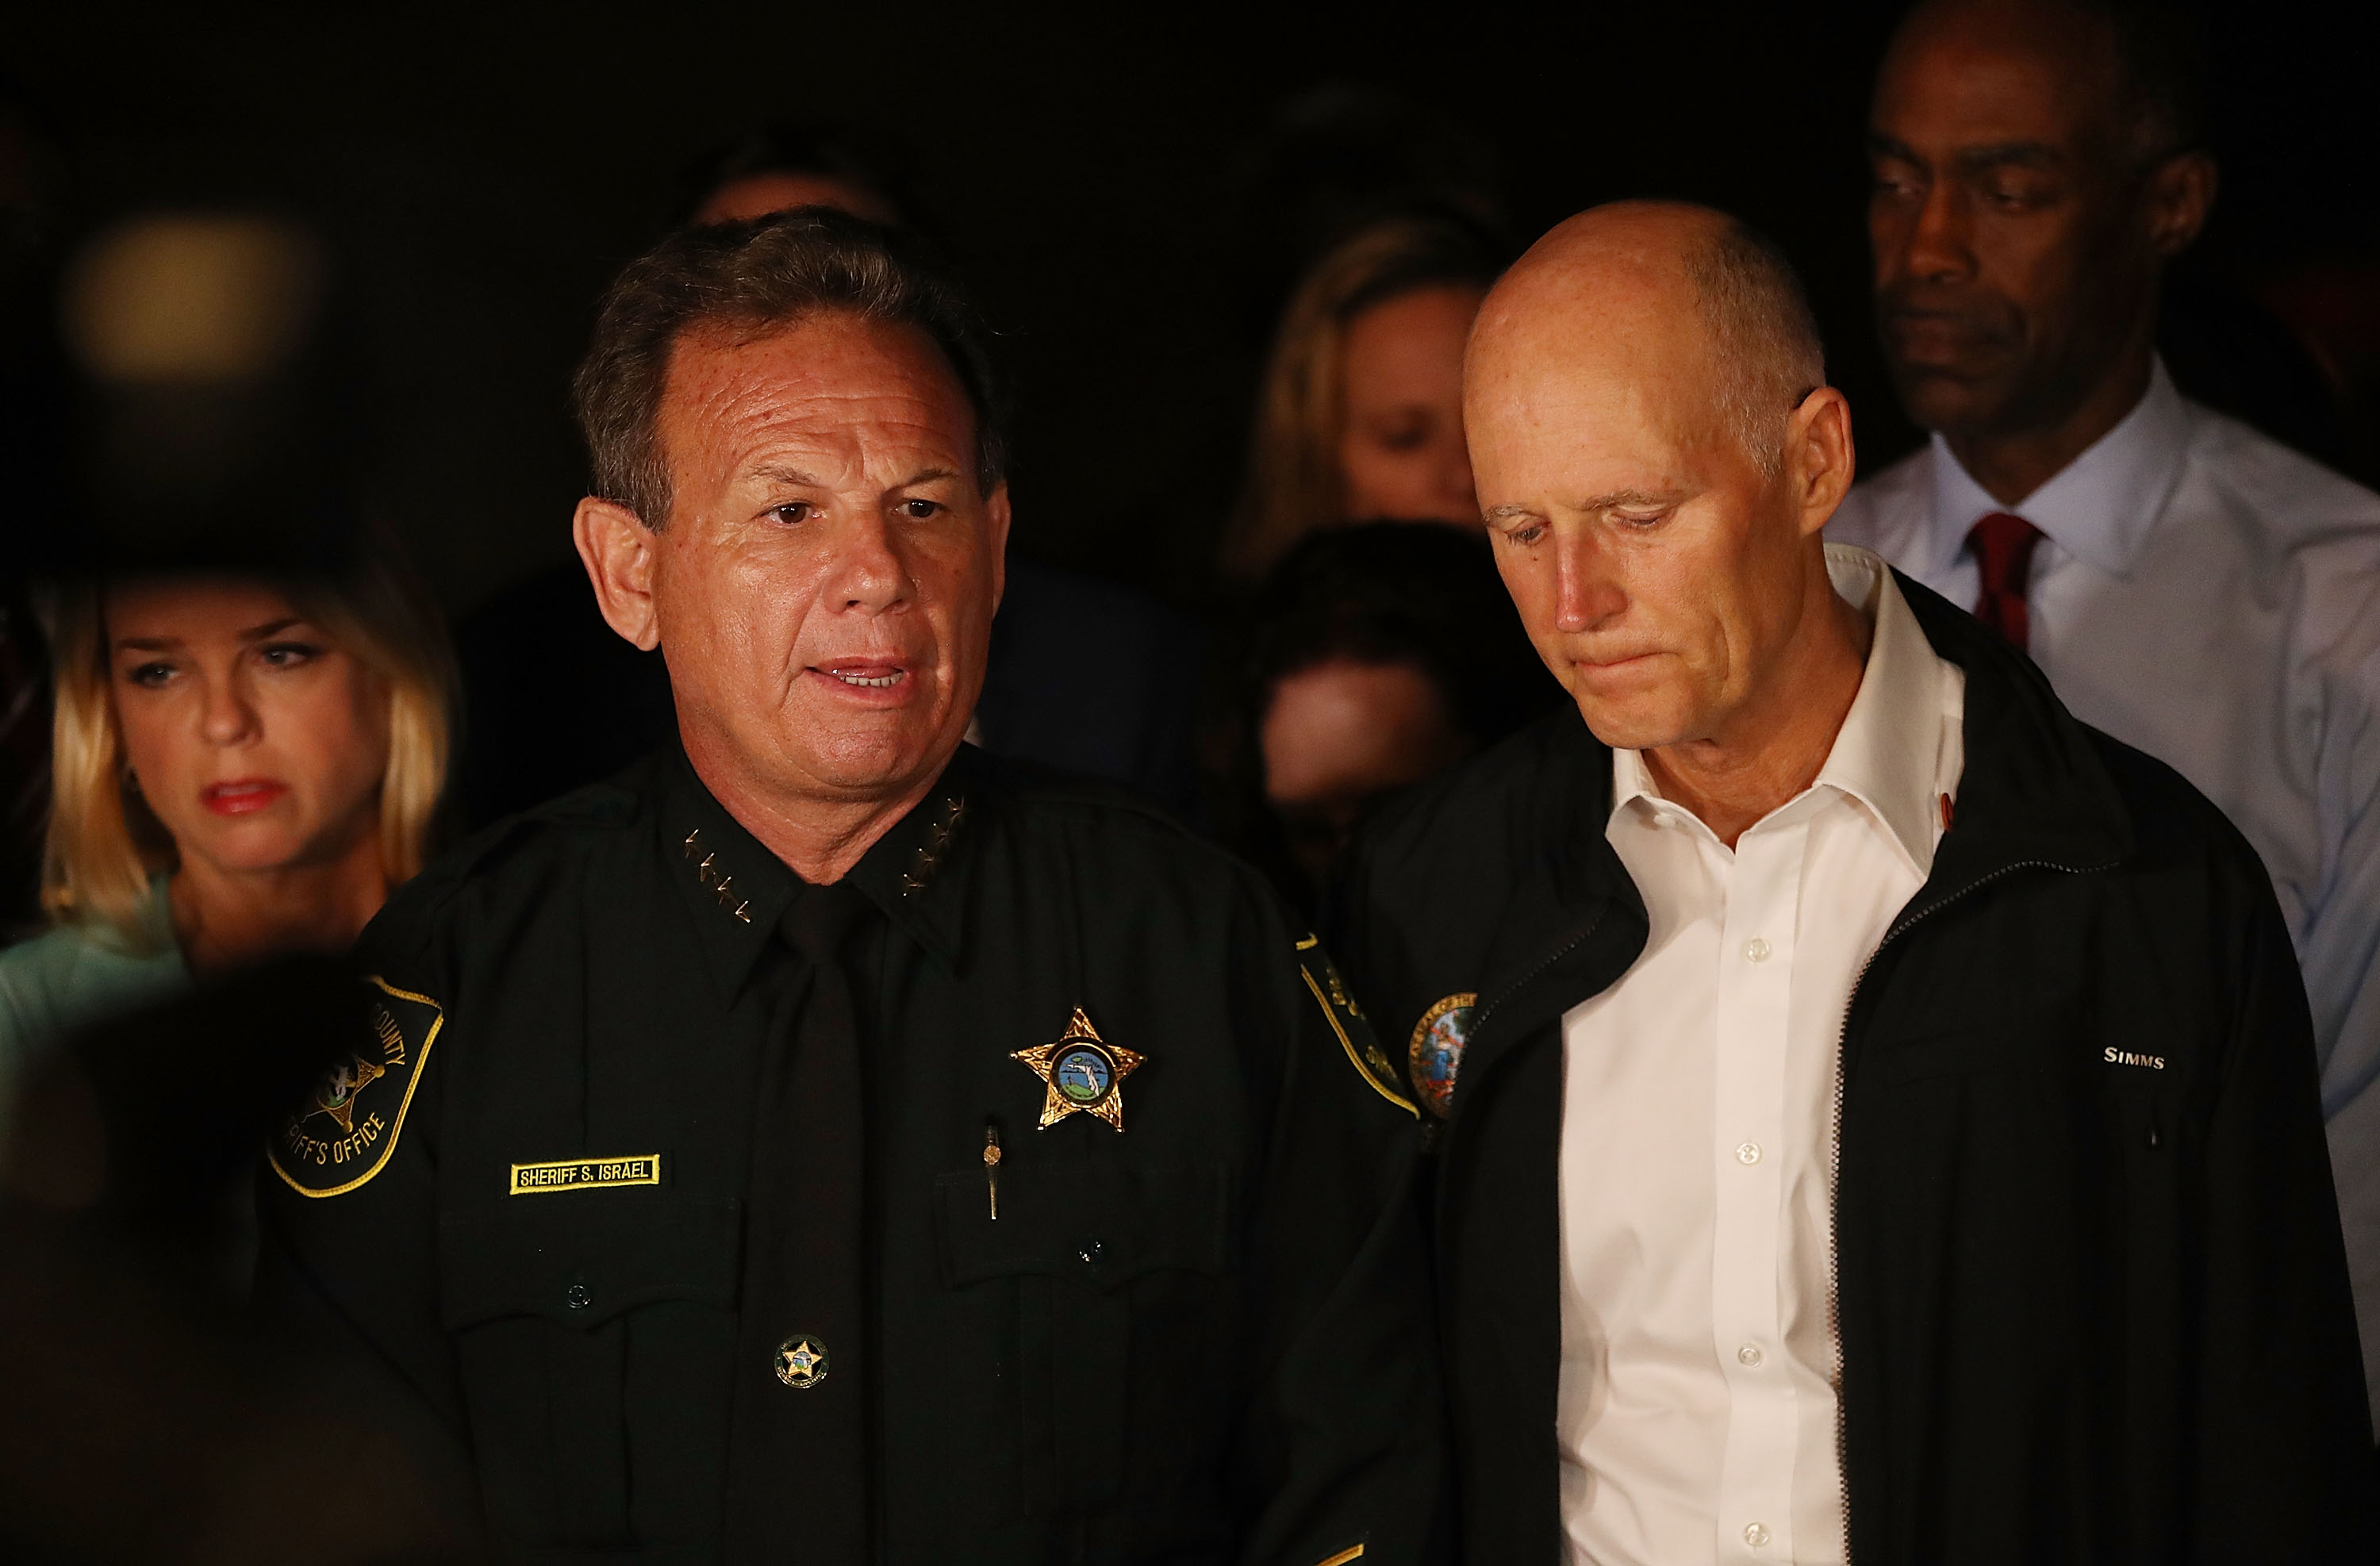 PARKLAND, FL - FEBRUARY 14: Scott Israel, Sheriff of Broward County, (L) and Florida Governor Rick Scott speak to the media as they visit Marjory Stoneman Douglas High School after a shooting at the school killed 17 people on February 14, 2018 in Parkland, Florida. Numerous law enforcement officials continue to investigate the scene. (Photo by Joe Raedle/Getty Images)